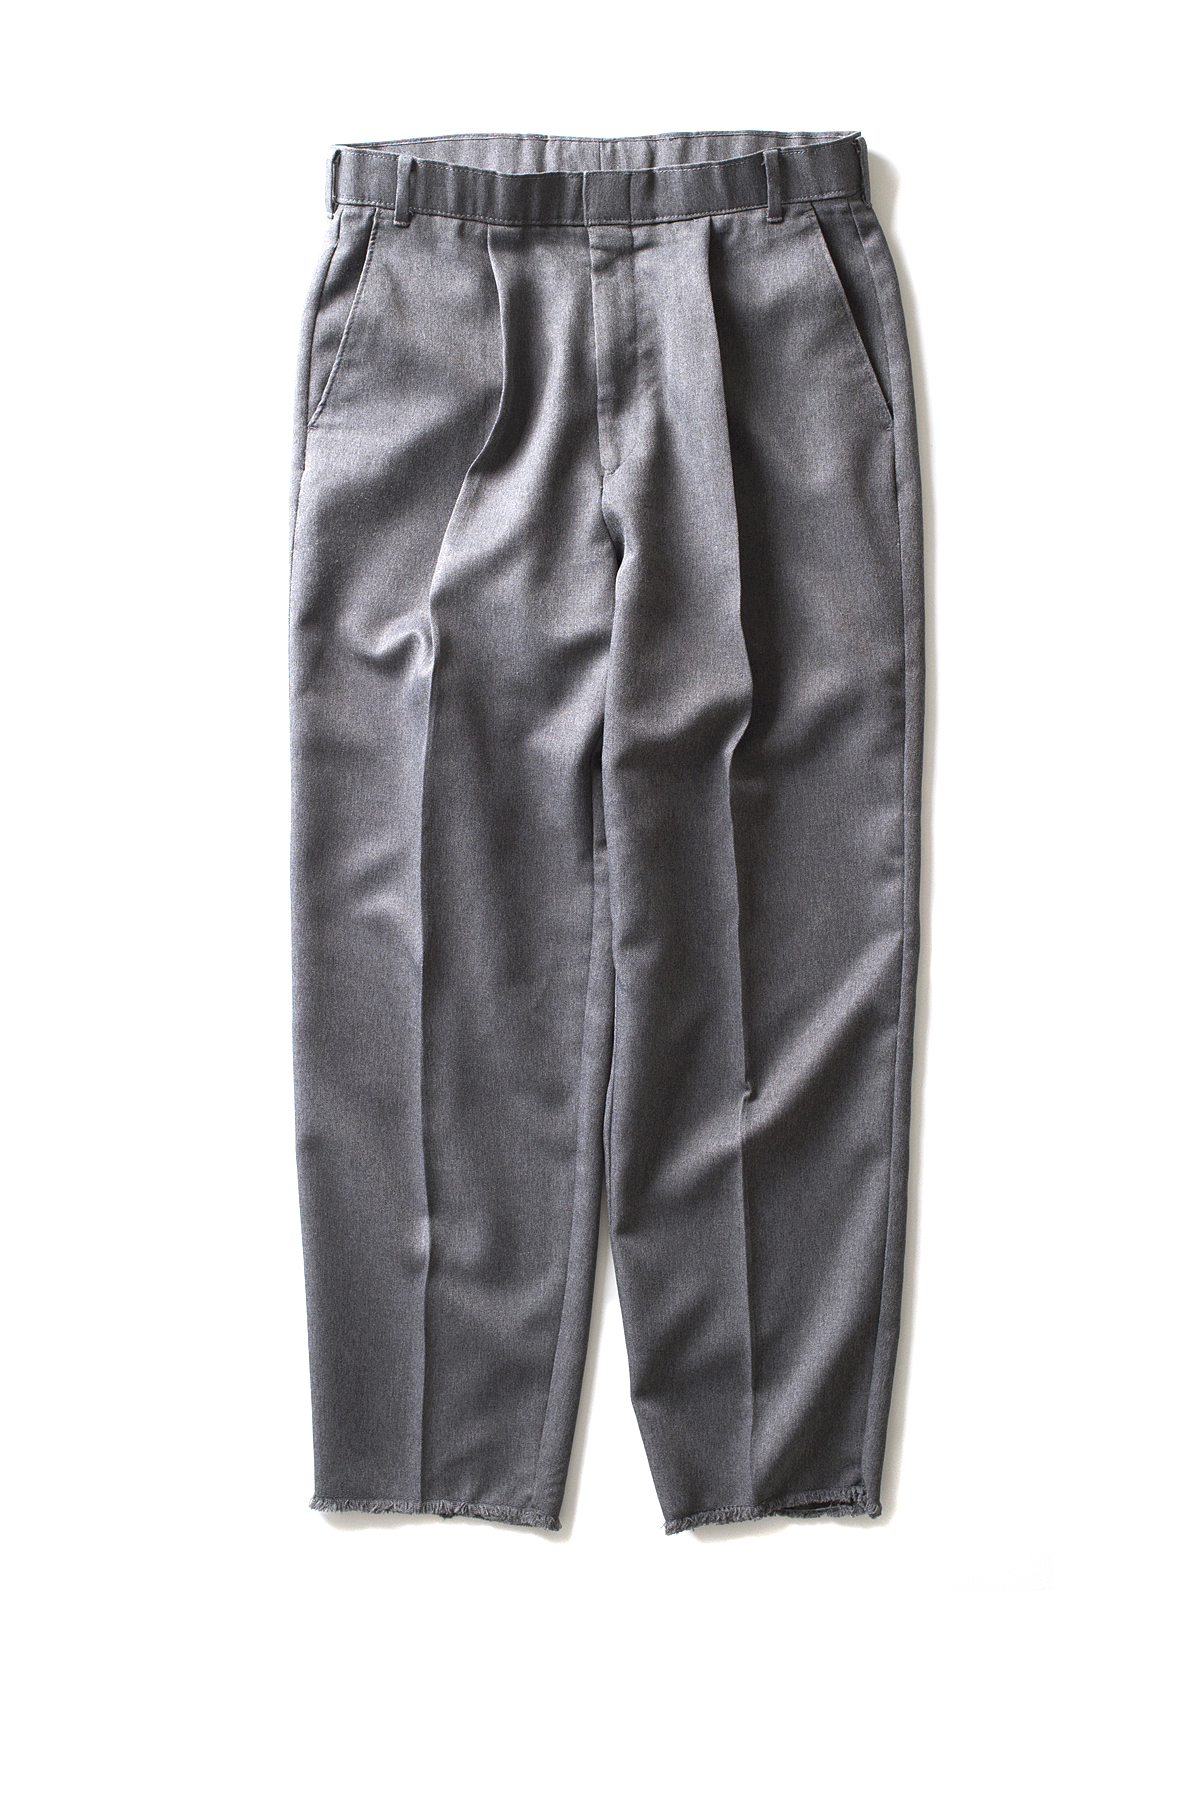 HEXICO : Deformer Ex. Action Slacks 1-Tuck Trousers (Grey)